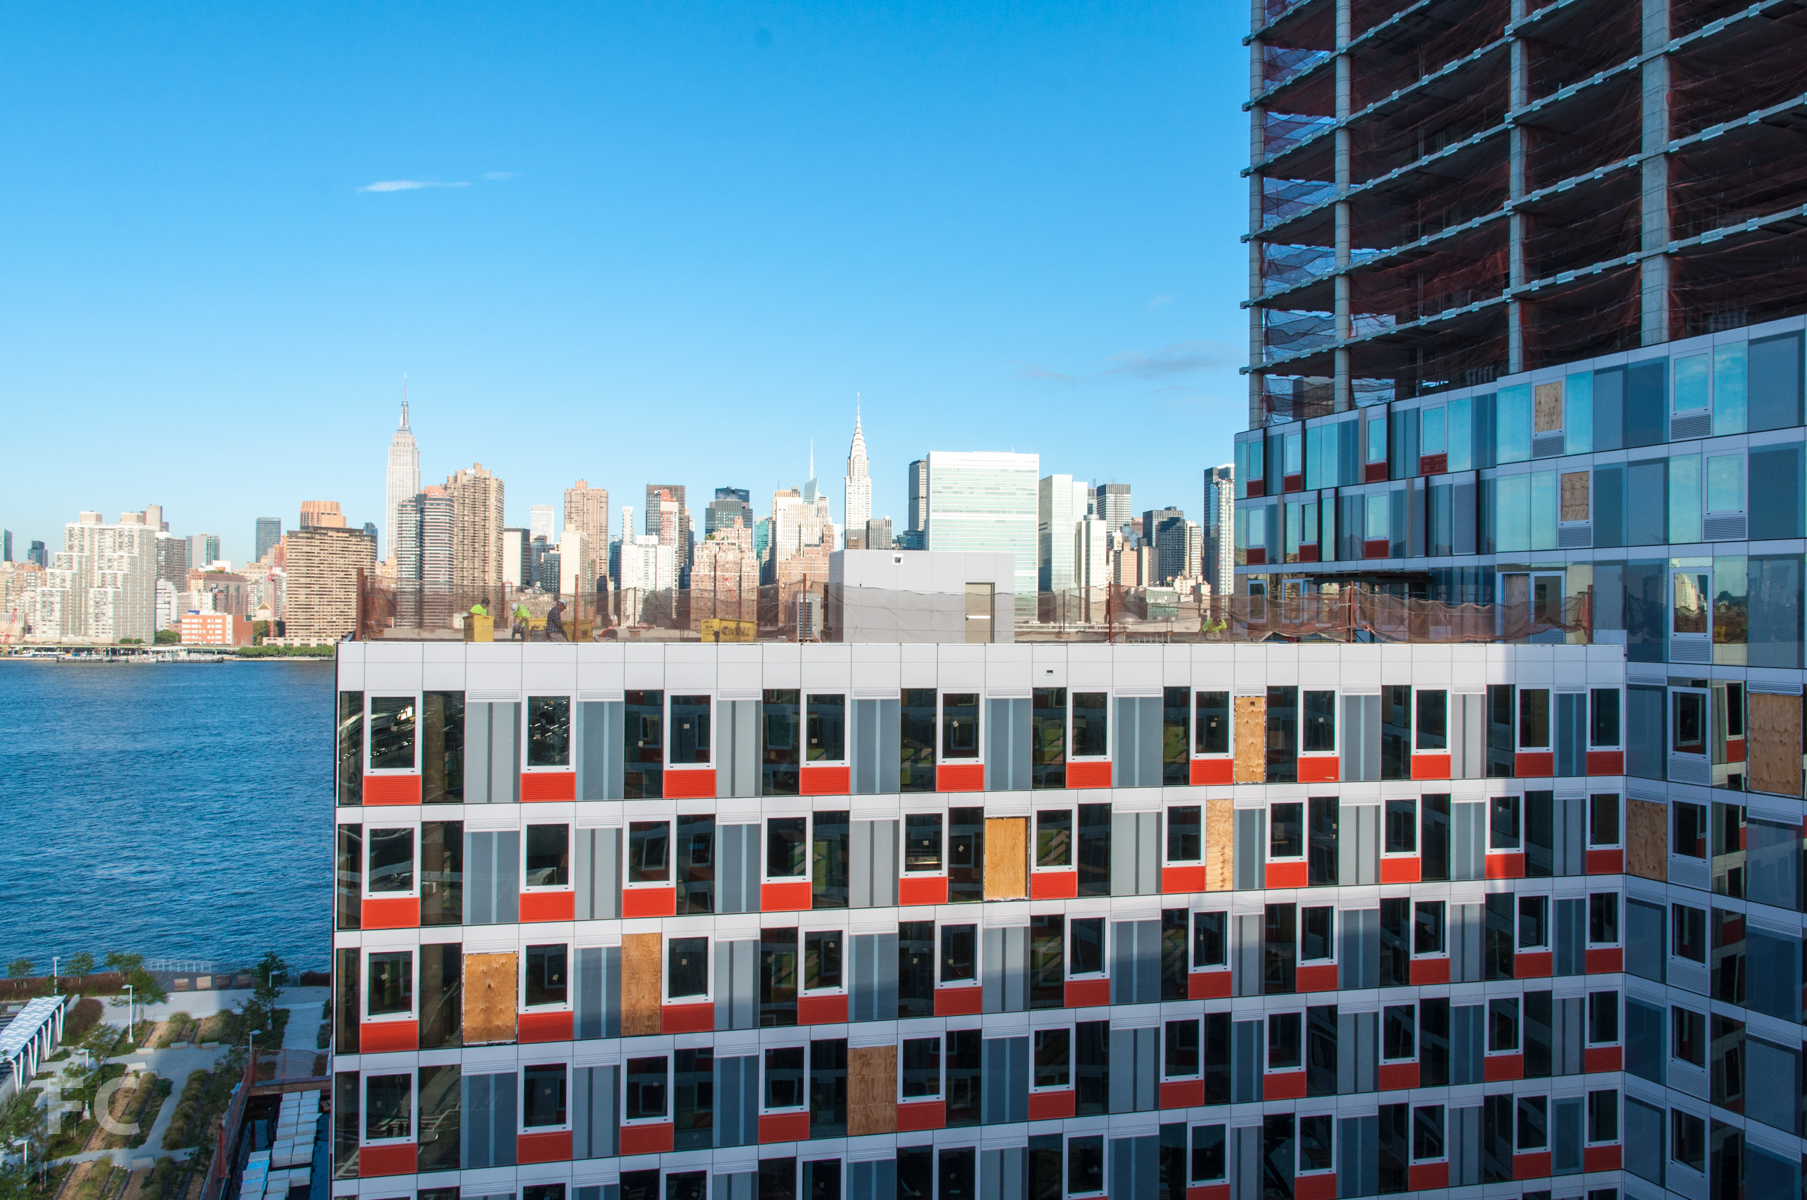 The view of the Manhattan skyline from a lower level roof deck on Building A.